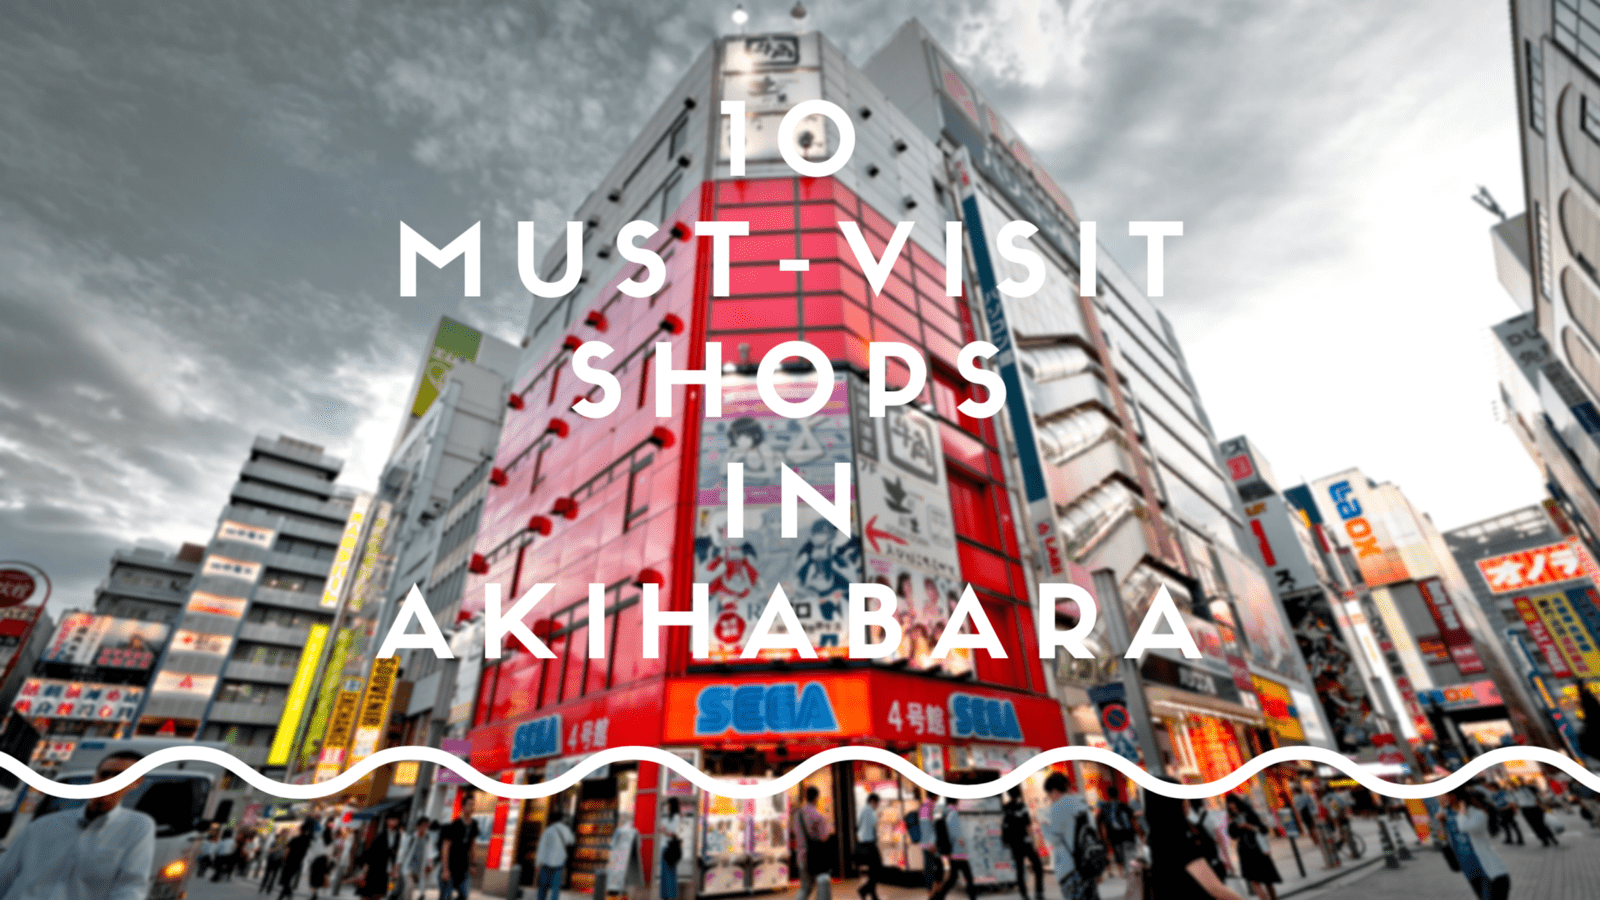 Akihabara Shopping Guide: 10 Best Shops in Akihabara - Japan